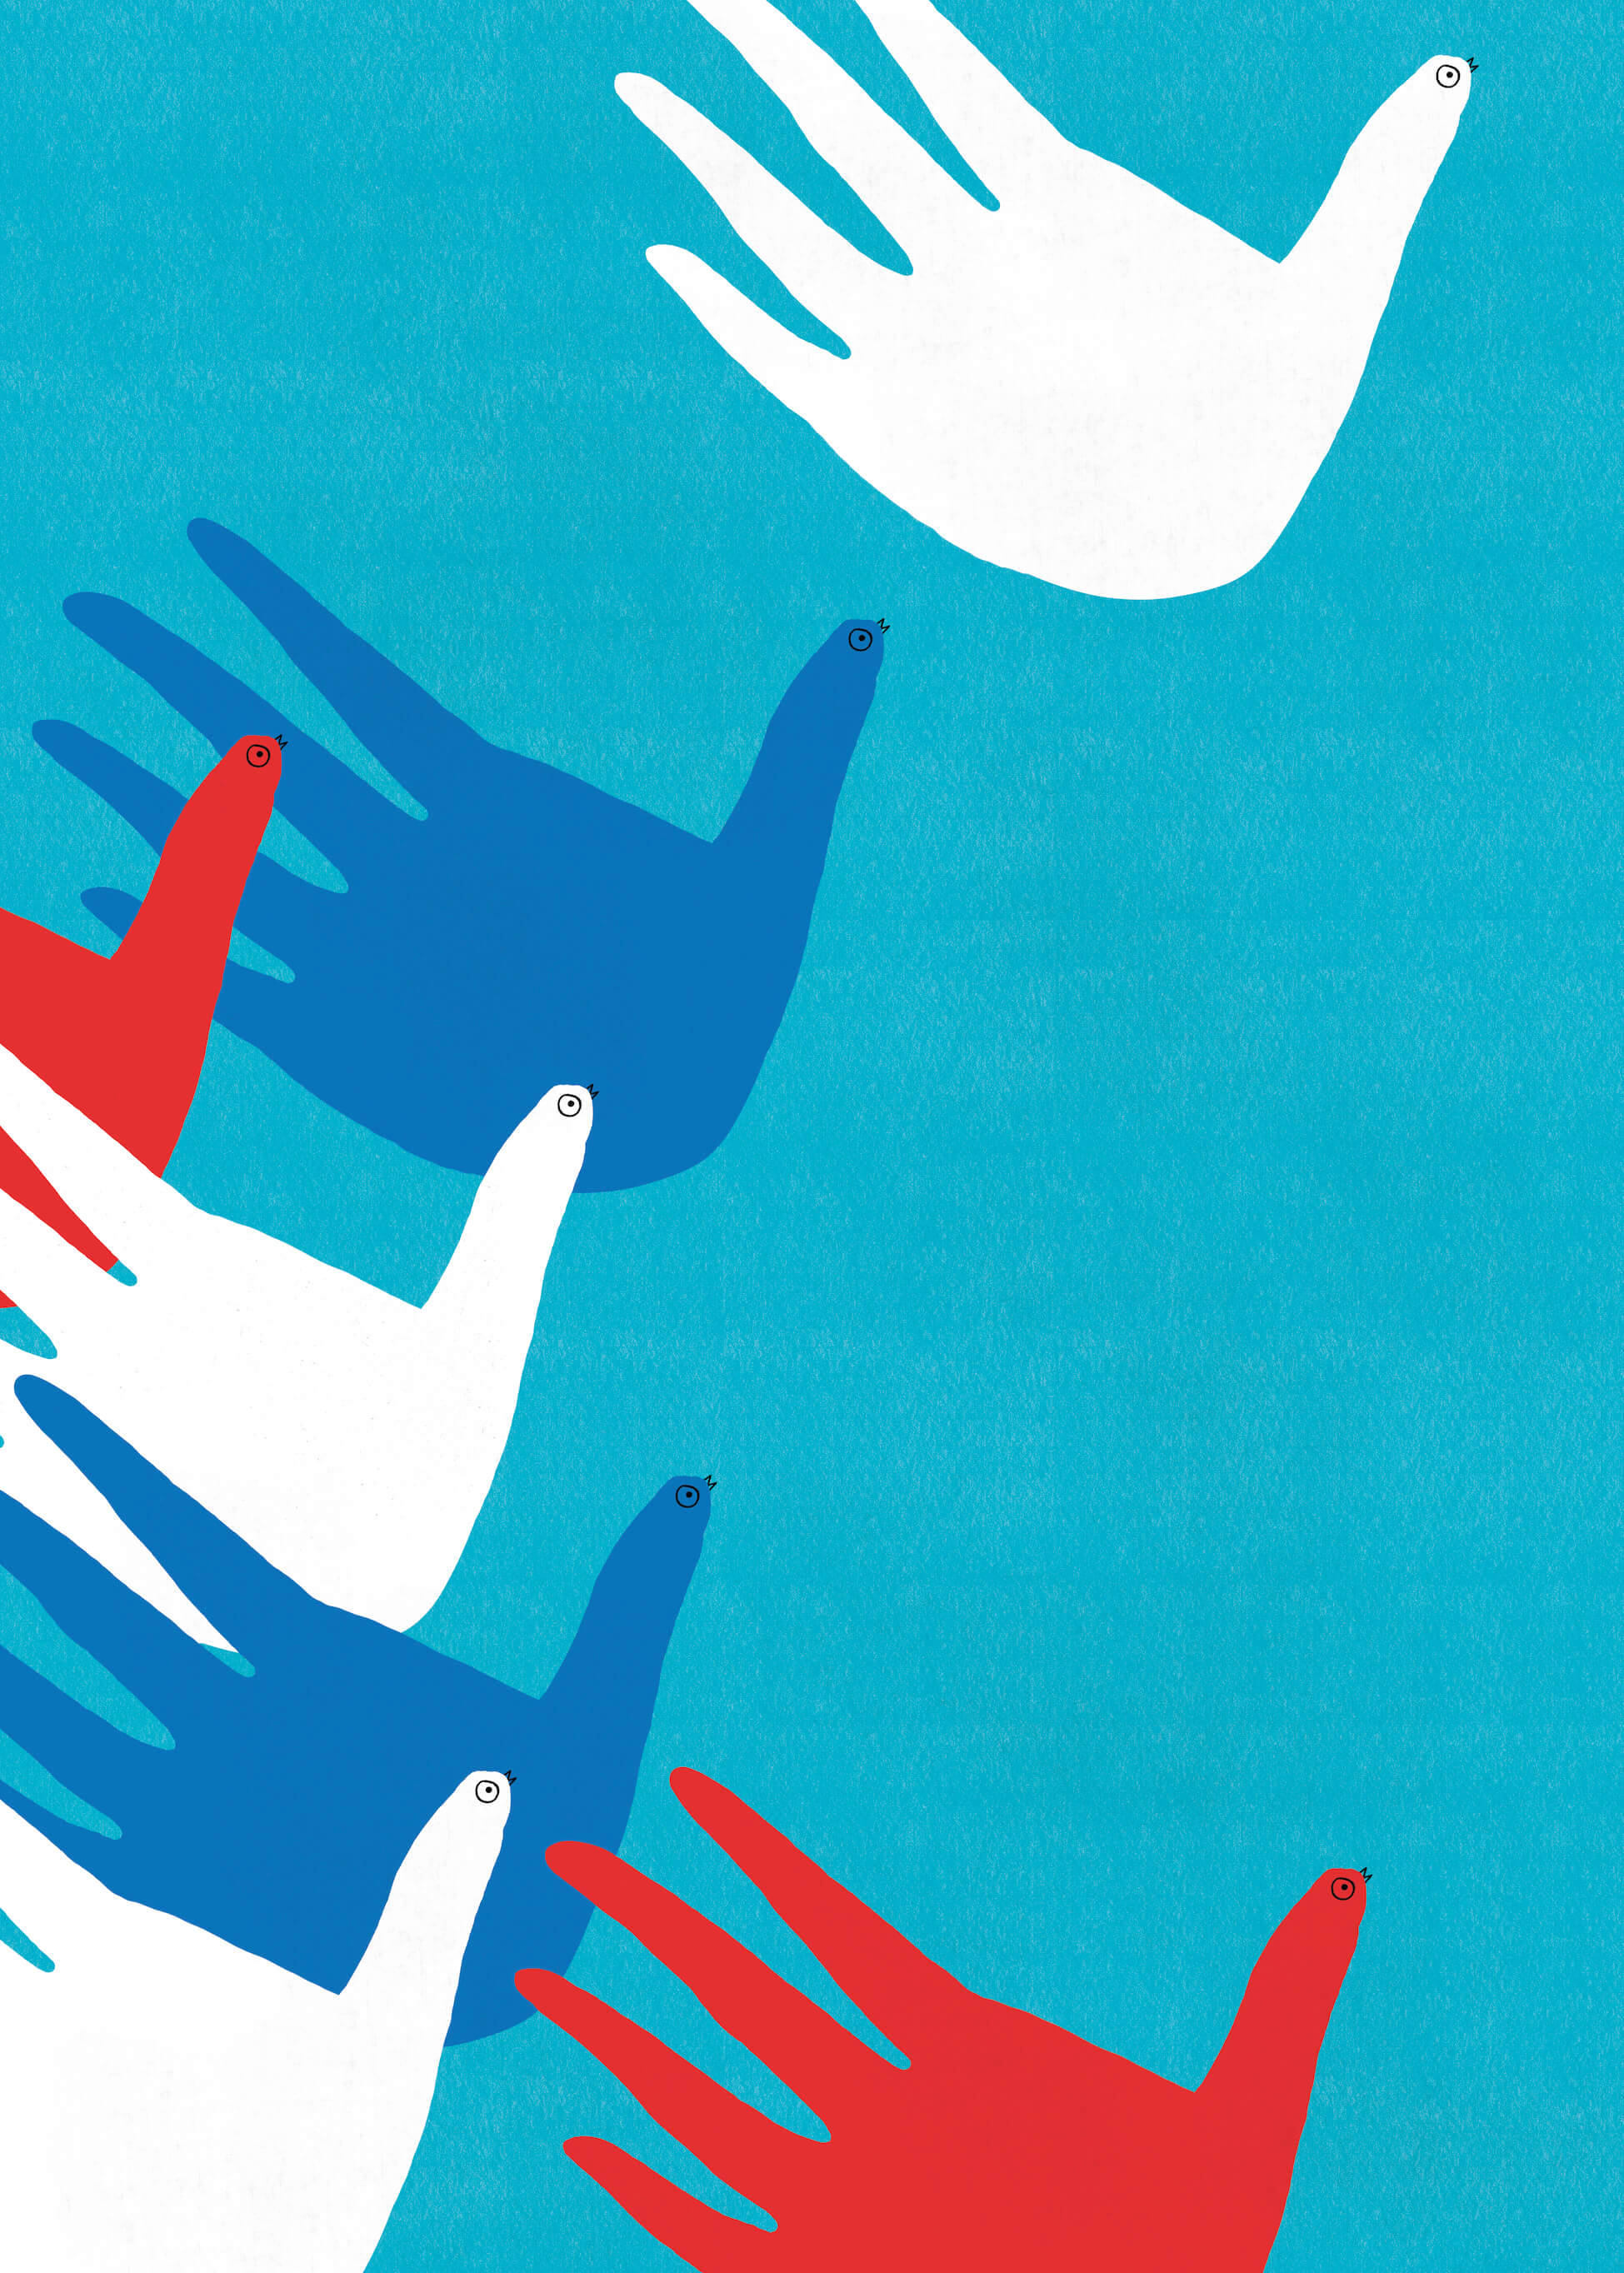 Our Future Is In Our Hands (color series) main image